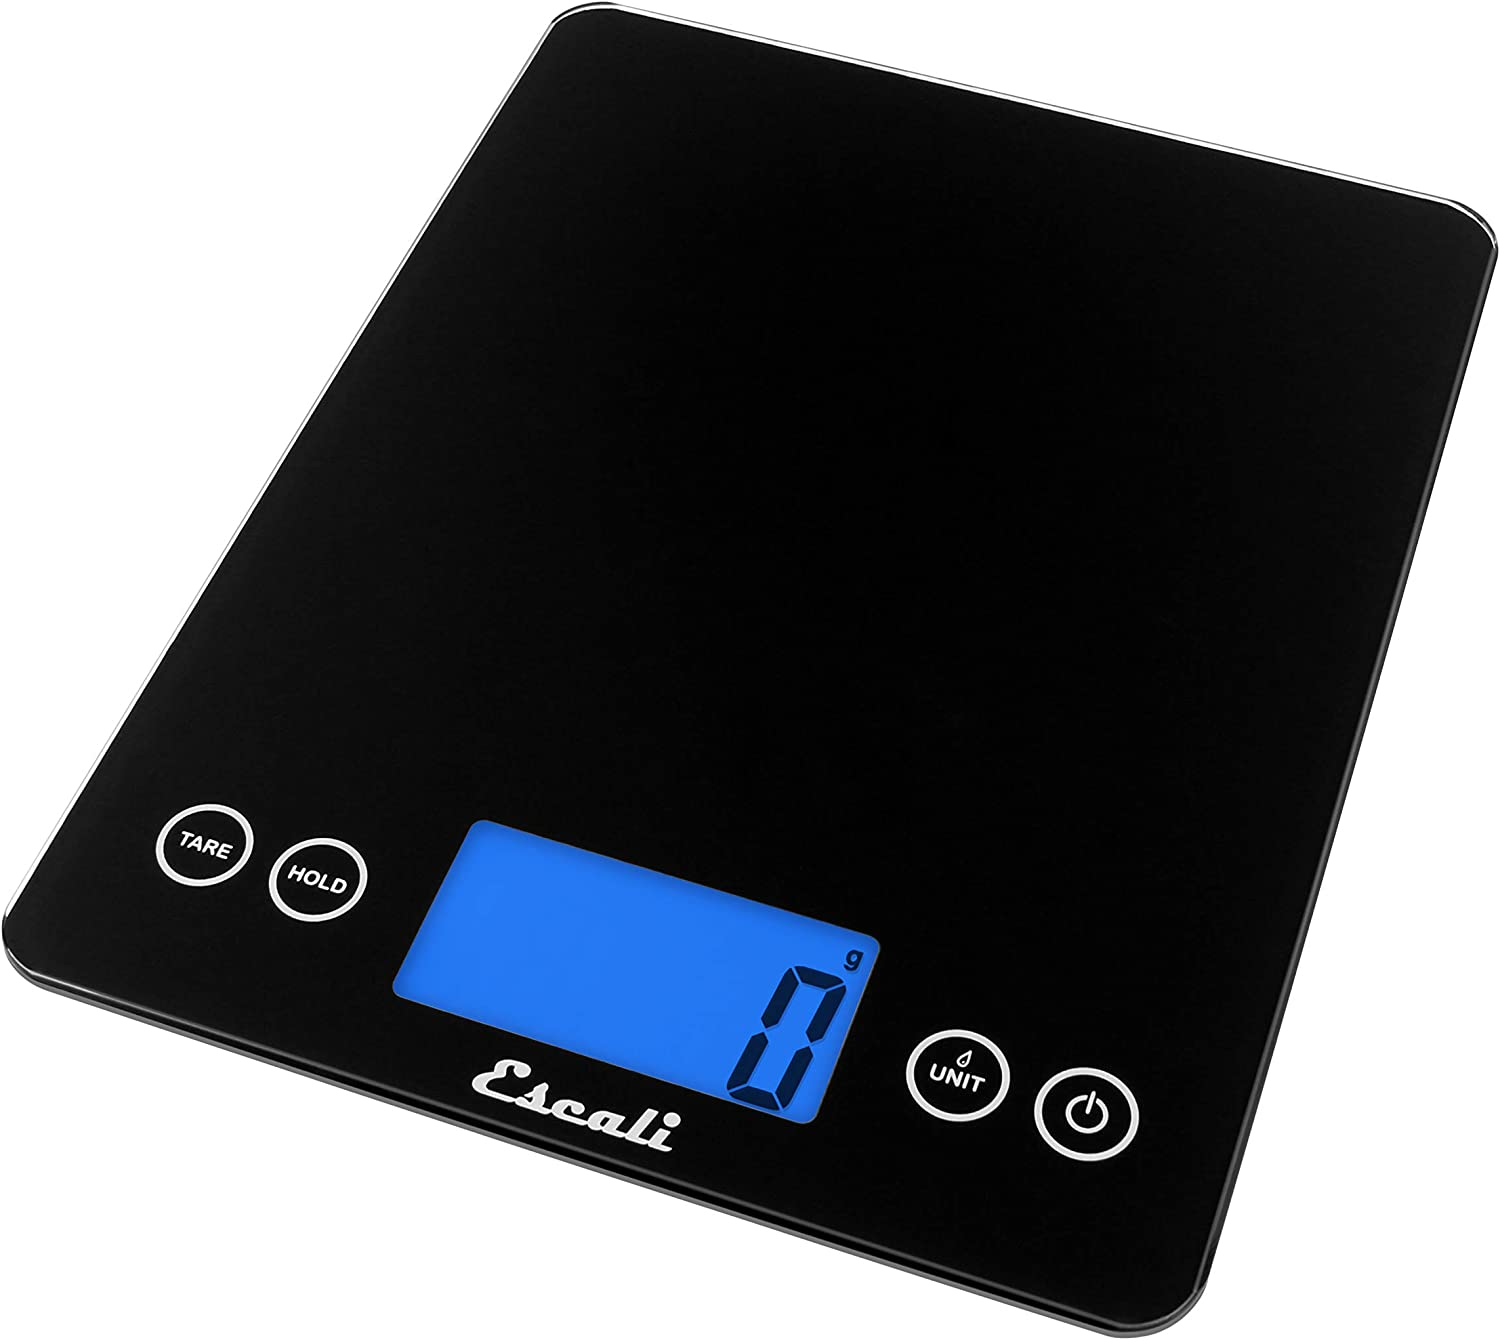 Amazon Com Escali 2210ib Artixl Extra Large Glass Digital Lcd Display Kitchen Scale Measures Liquid And Dry Ingredients Tare Function 22lb Capacity Black Kitchen Dining